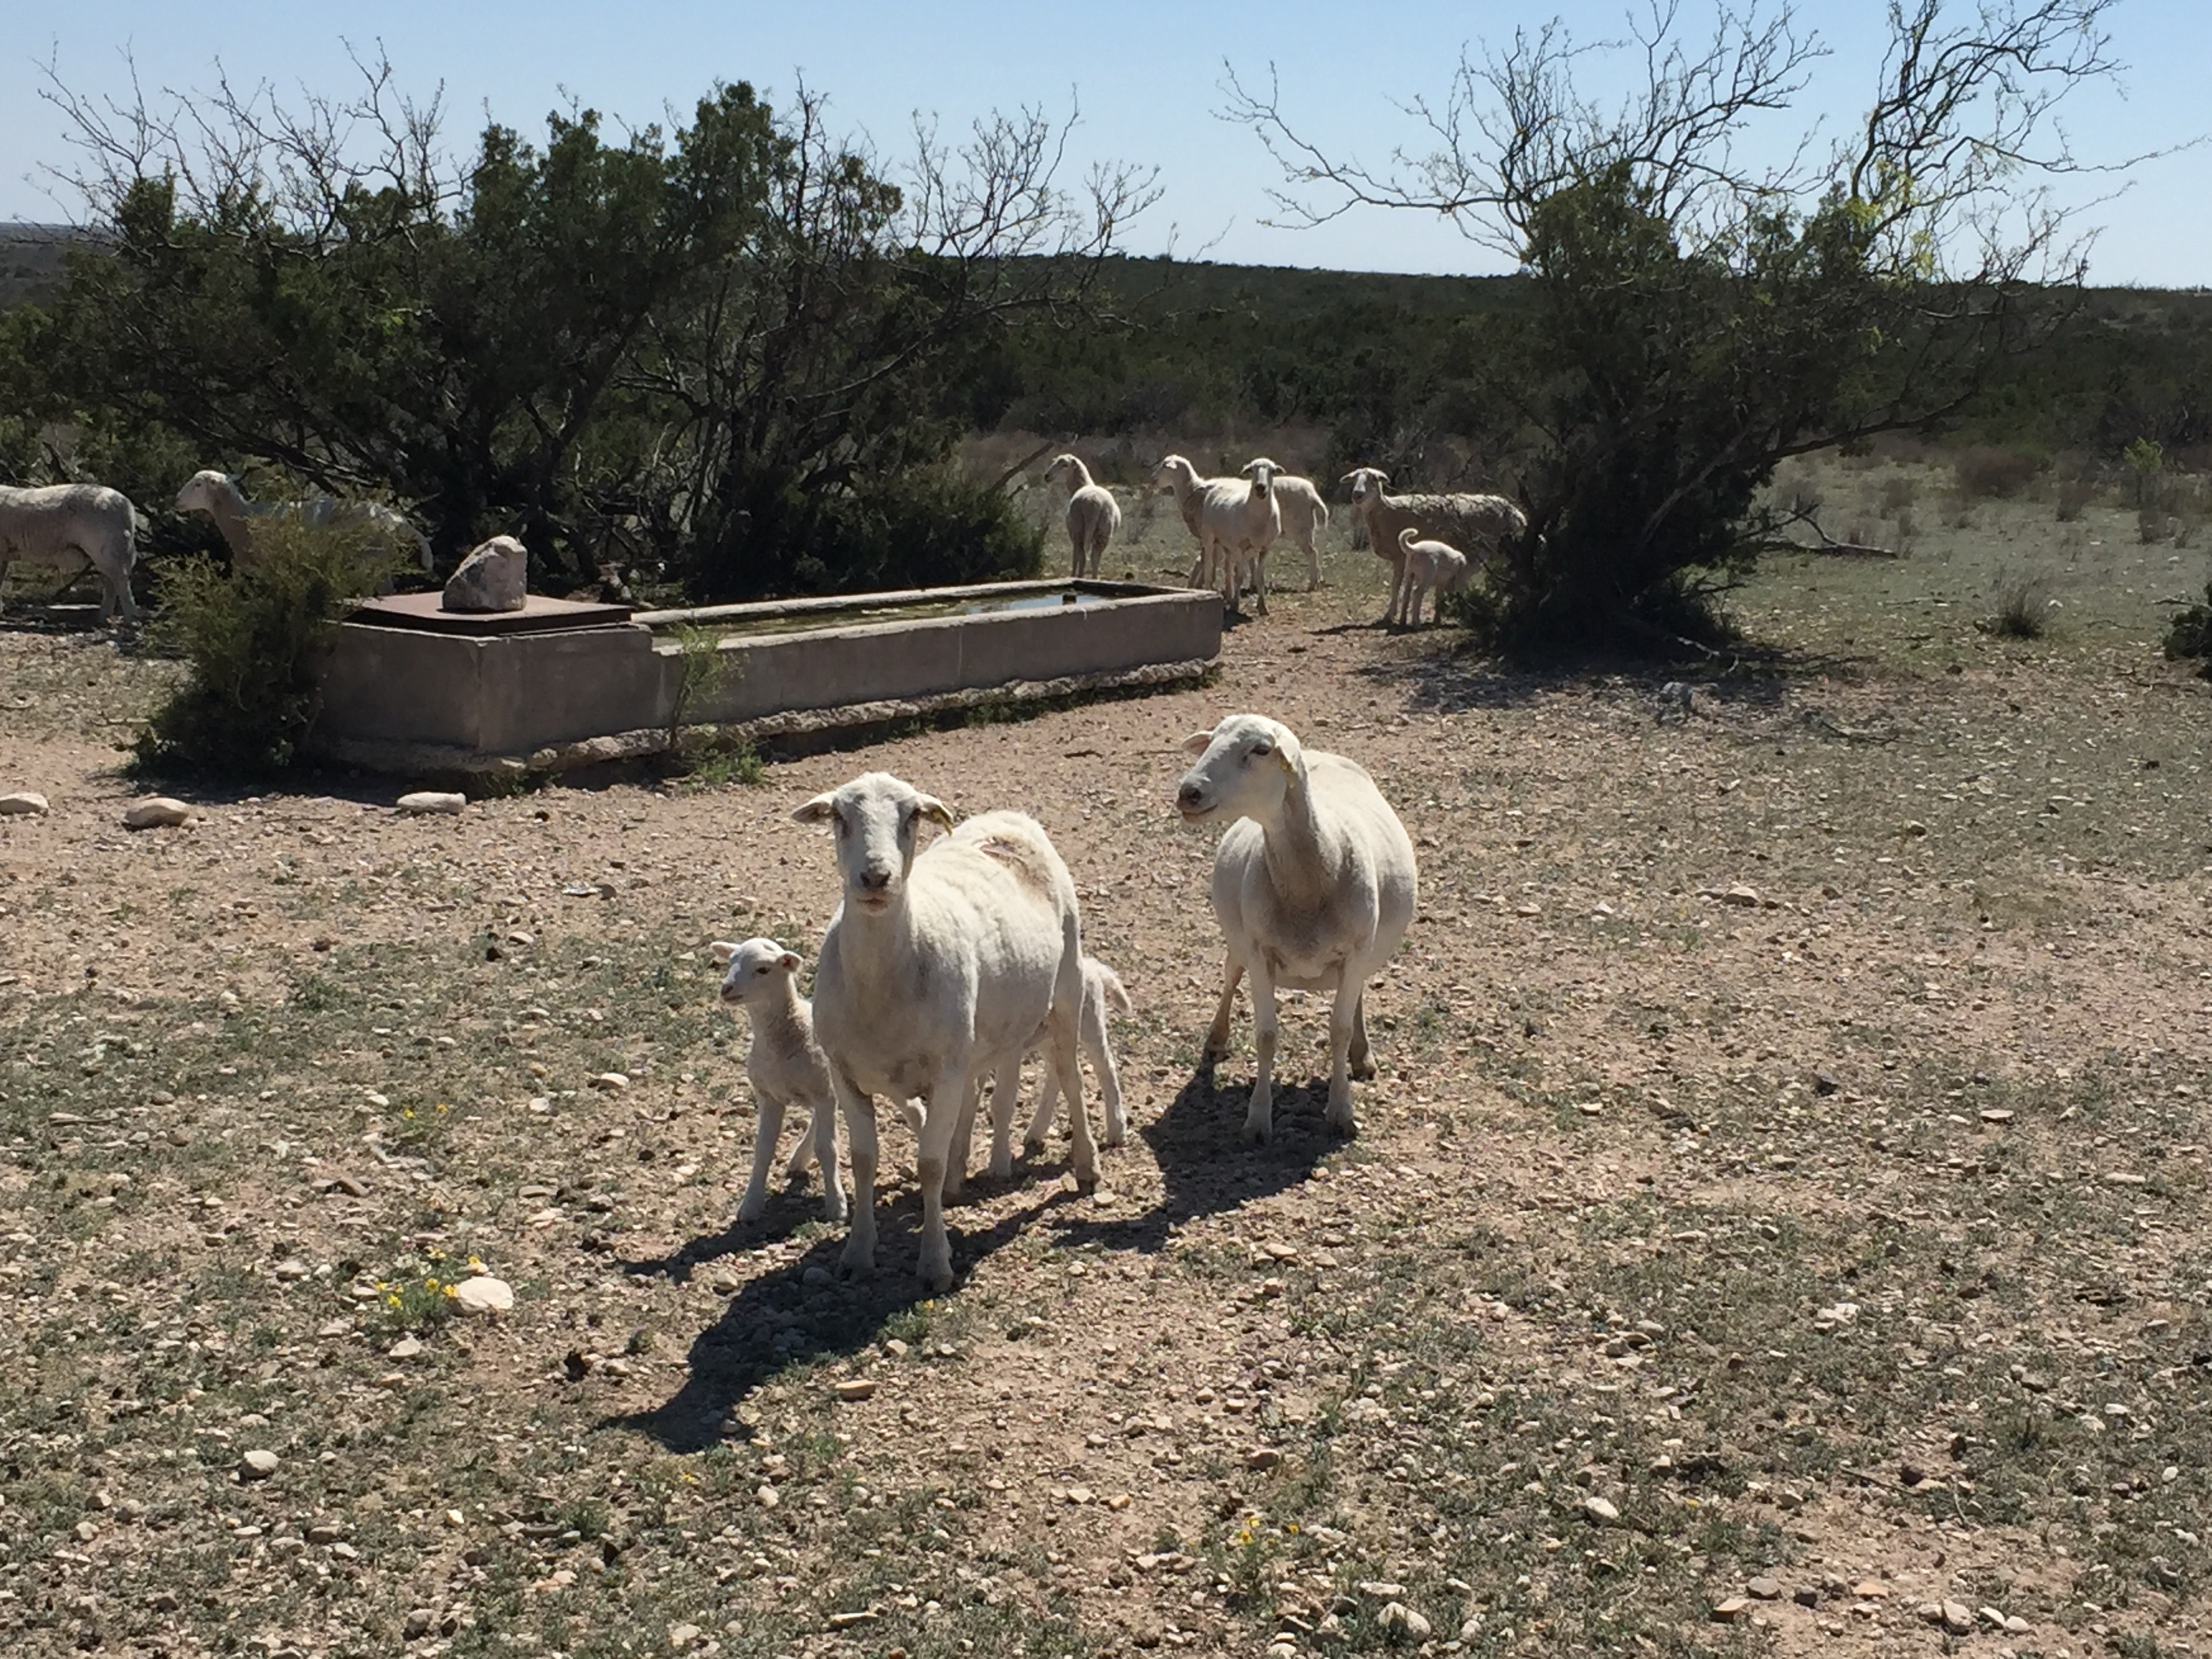 Sheep And Goats – Page 2 – Staying Up-to-Date on Sheep and Goats